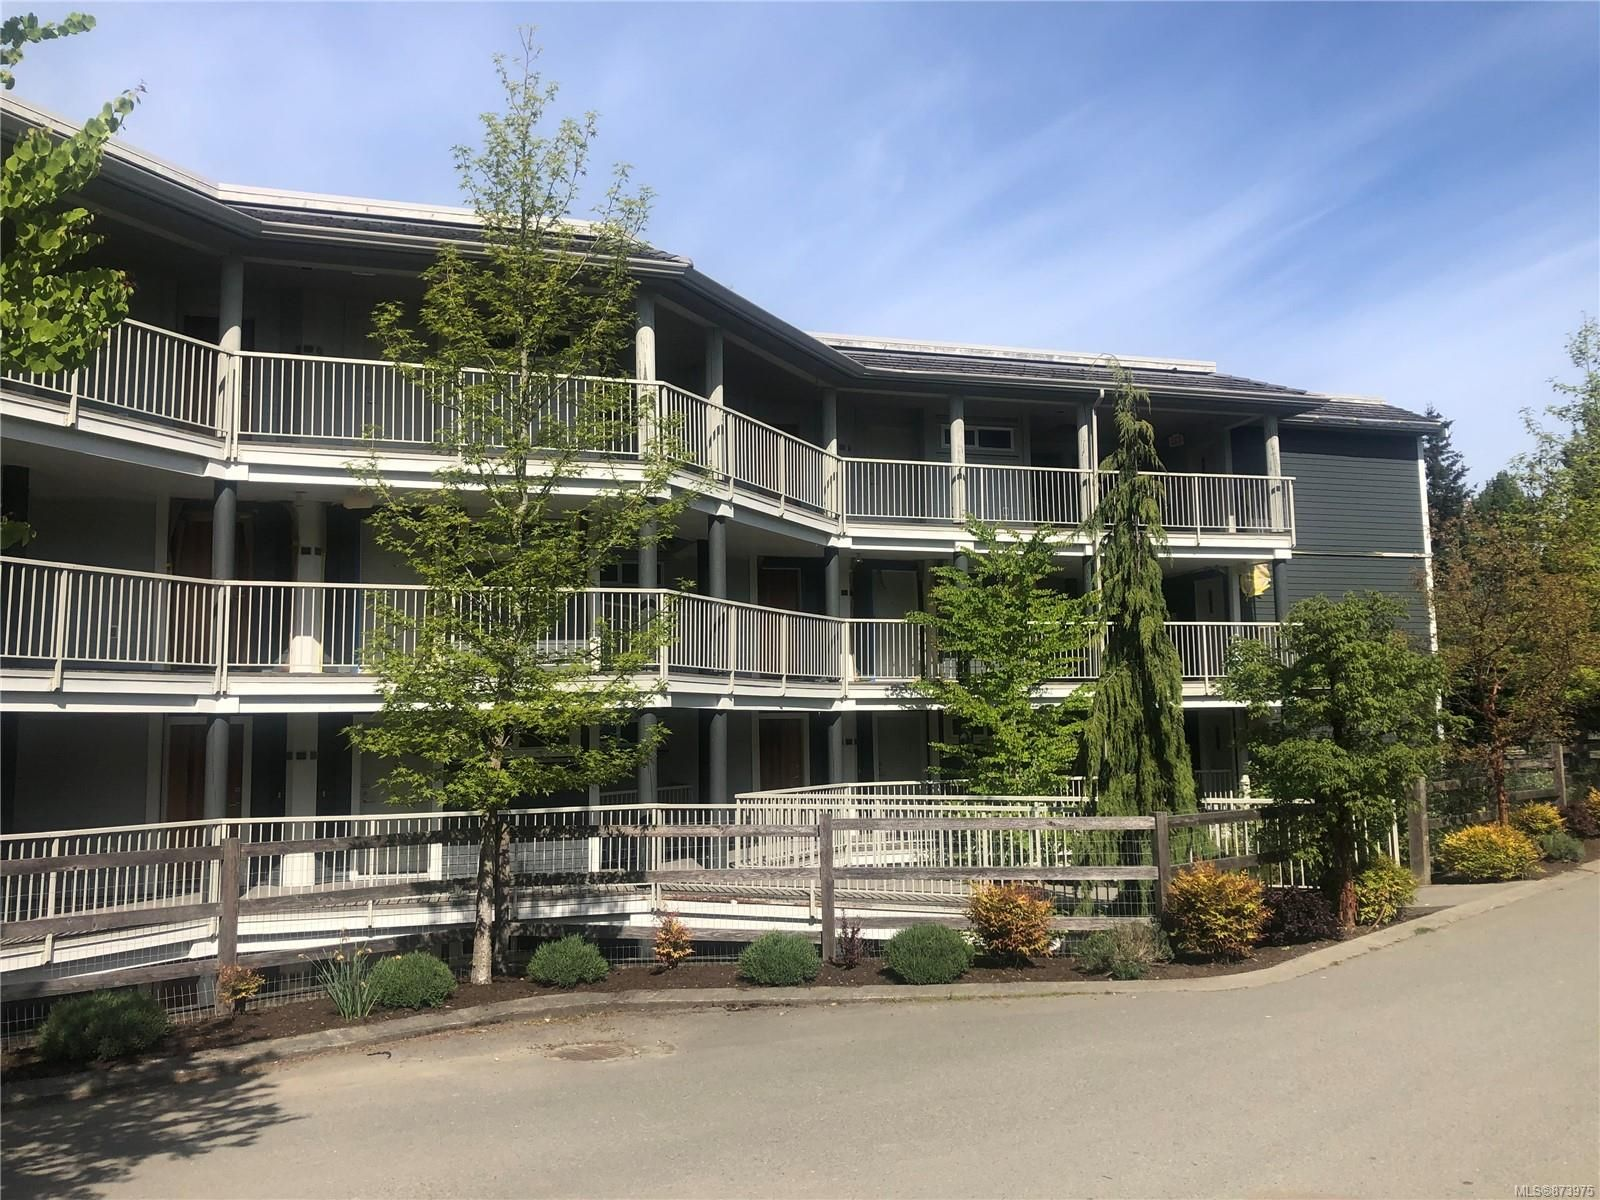 Main Photo: 220 1600 Stroulger Rd in : PQ Nanoose Condo for sale (Parksville/Qualicum)  : MLS®# 873975